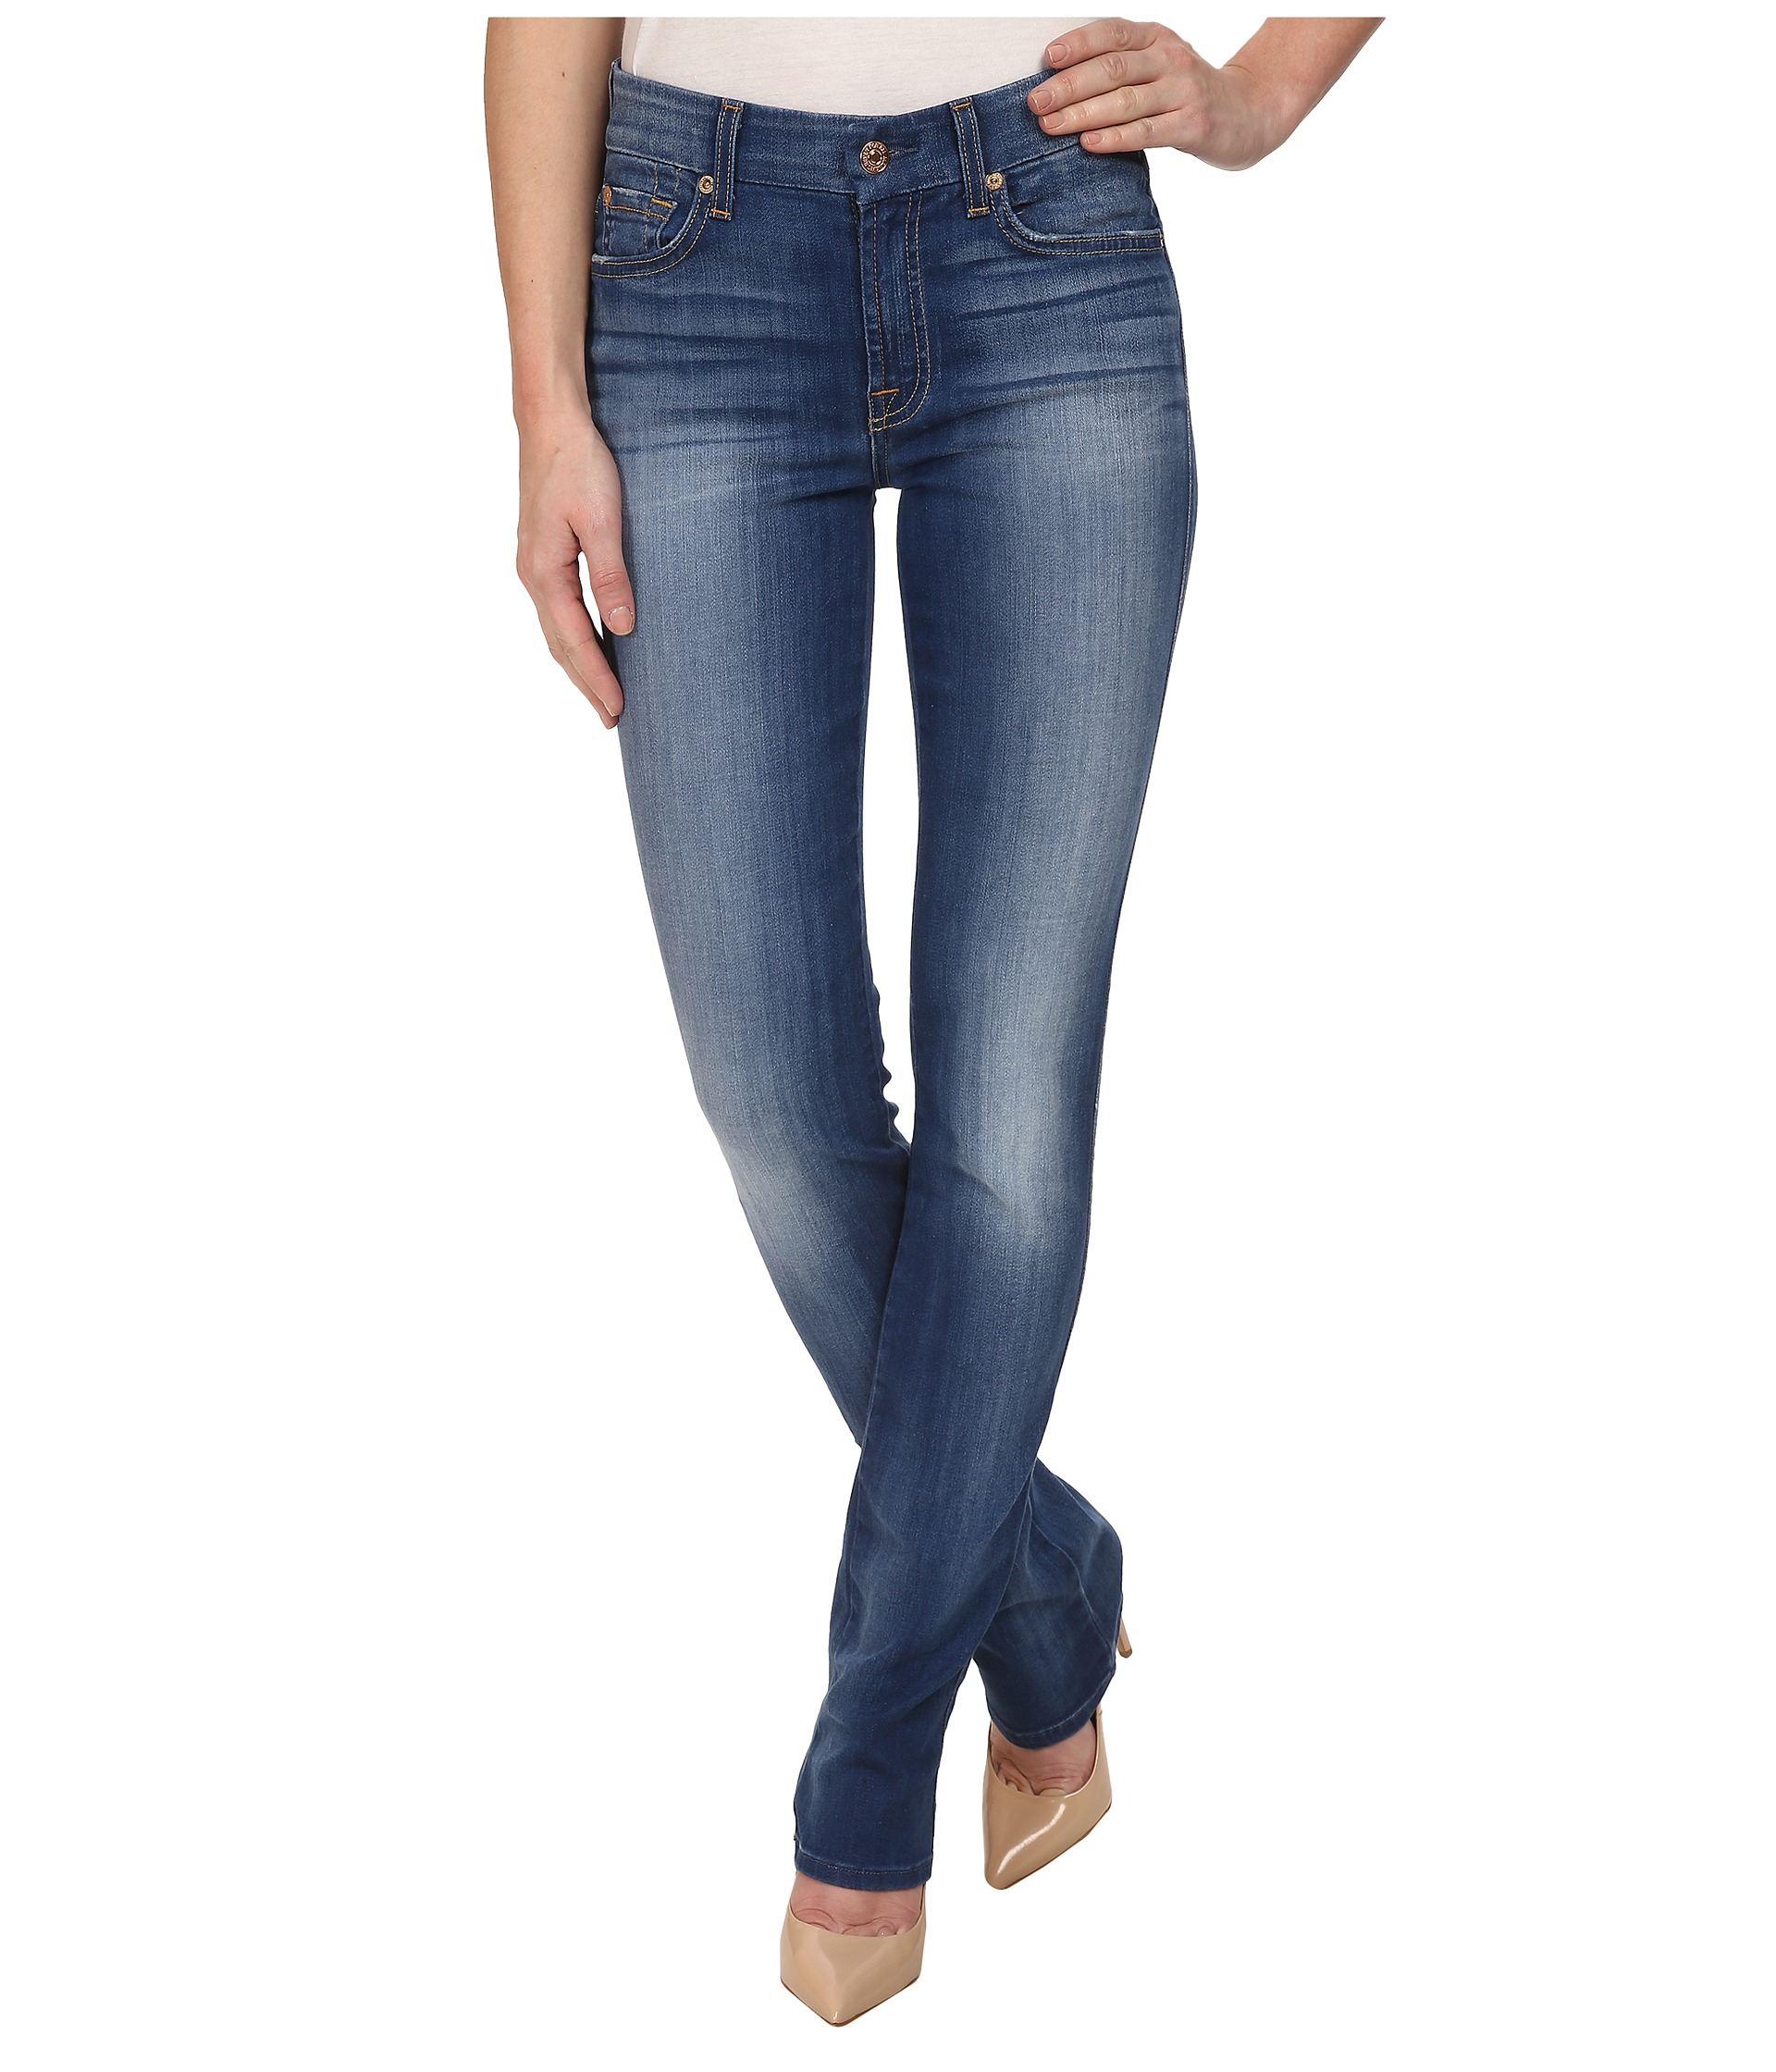 7 For All Mankind, Jeans, Women at 6pm.com